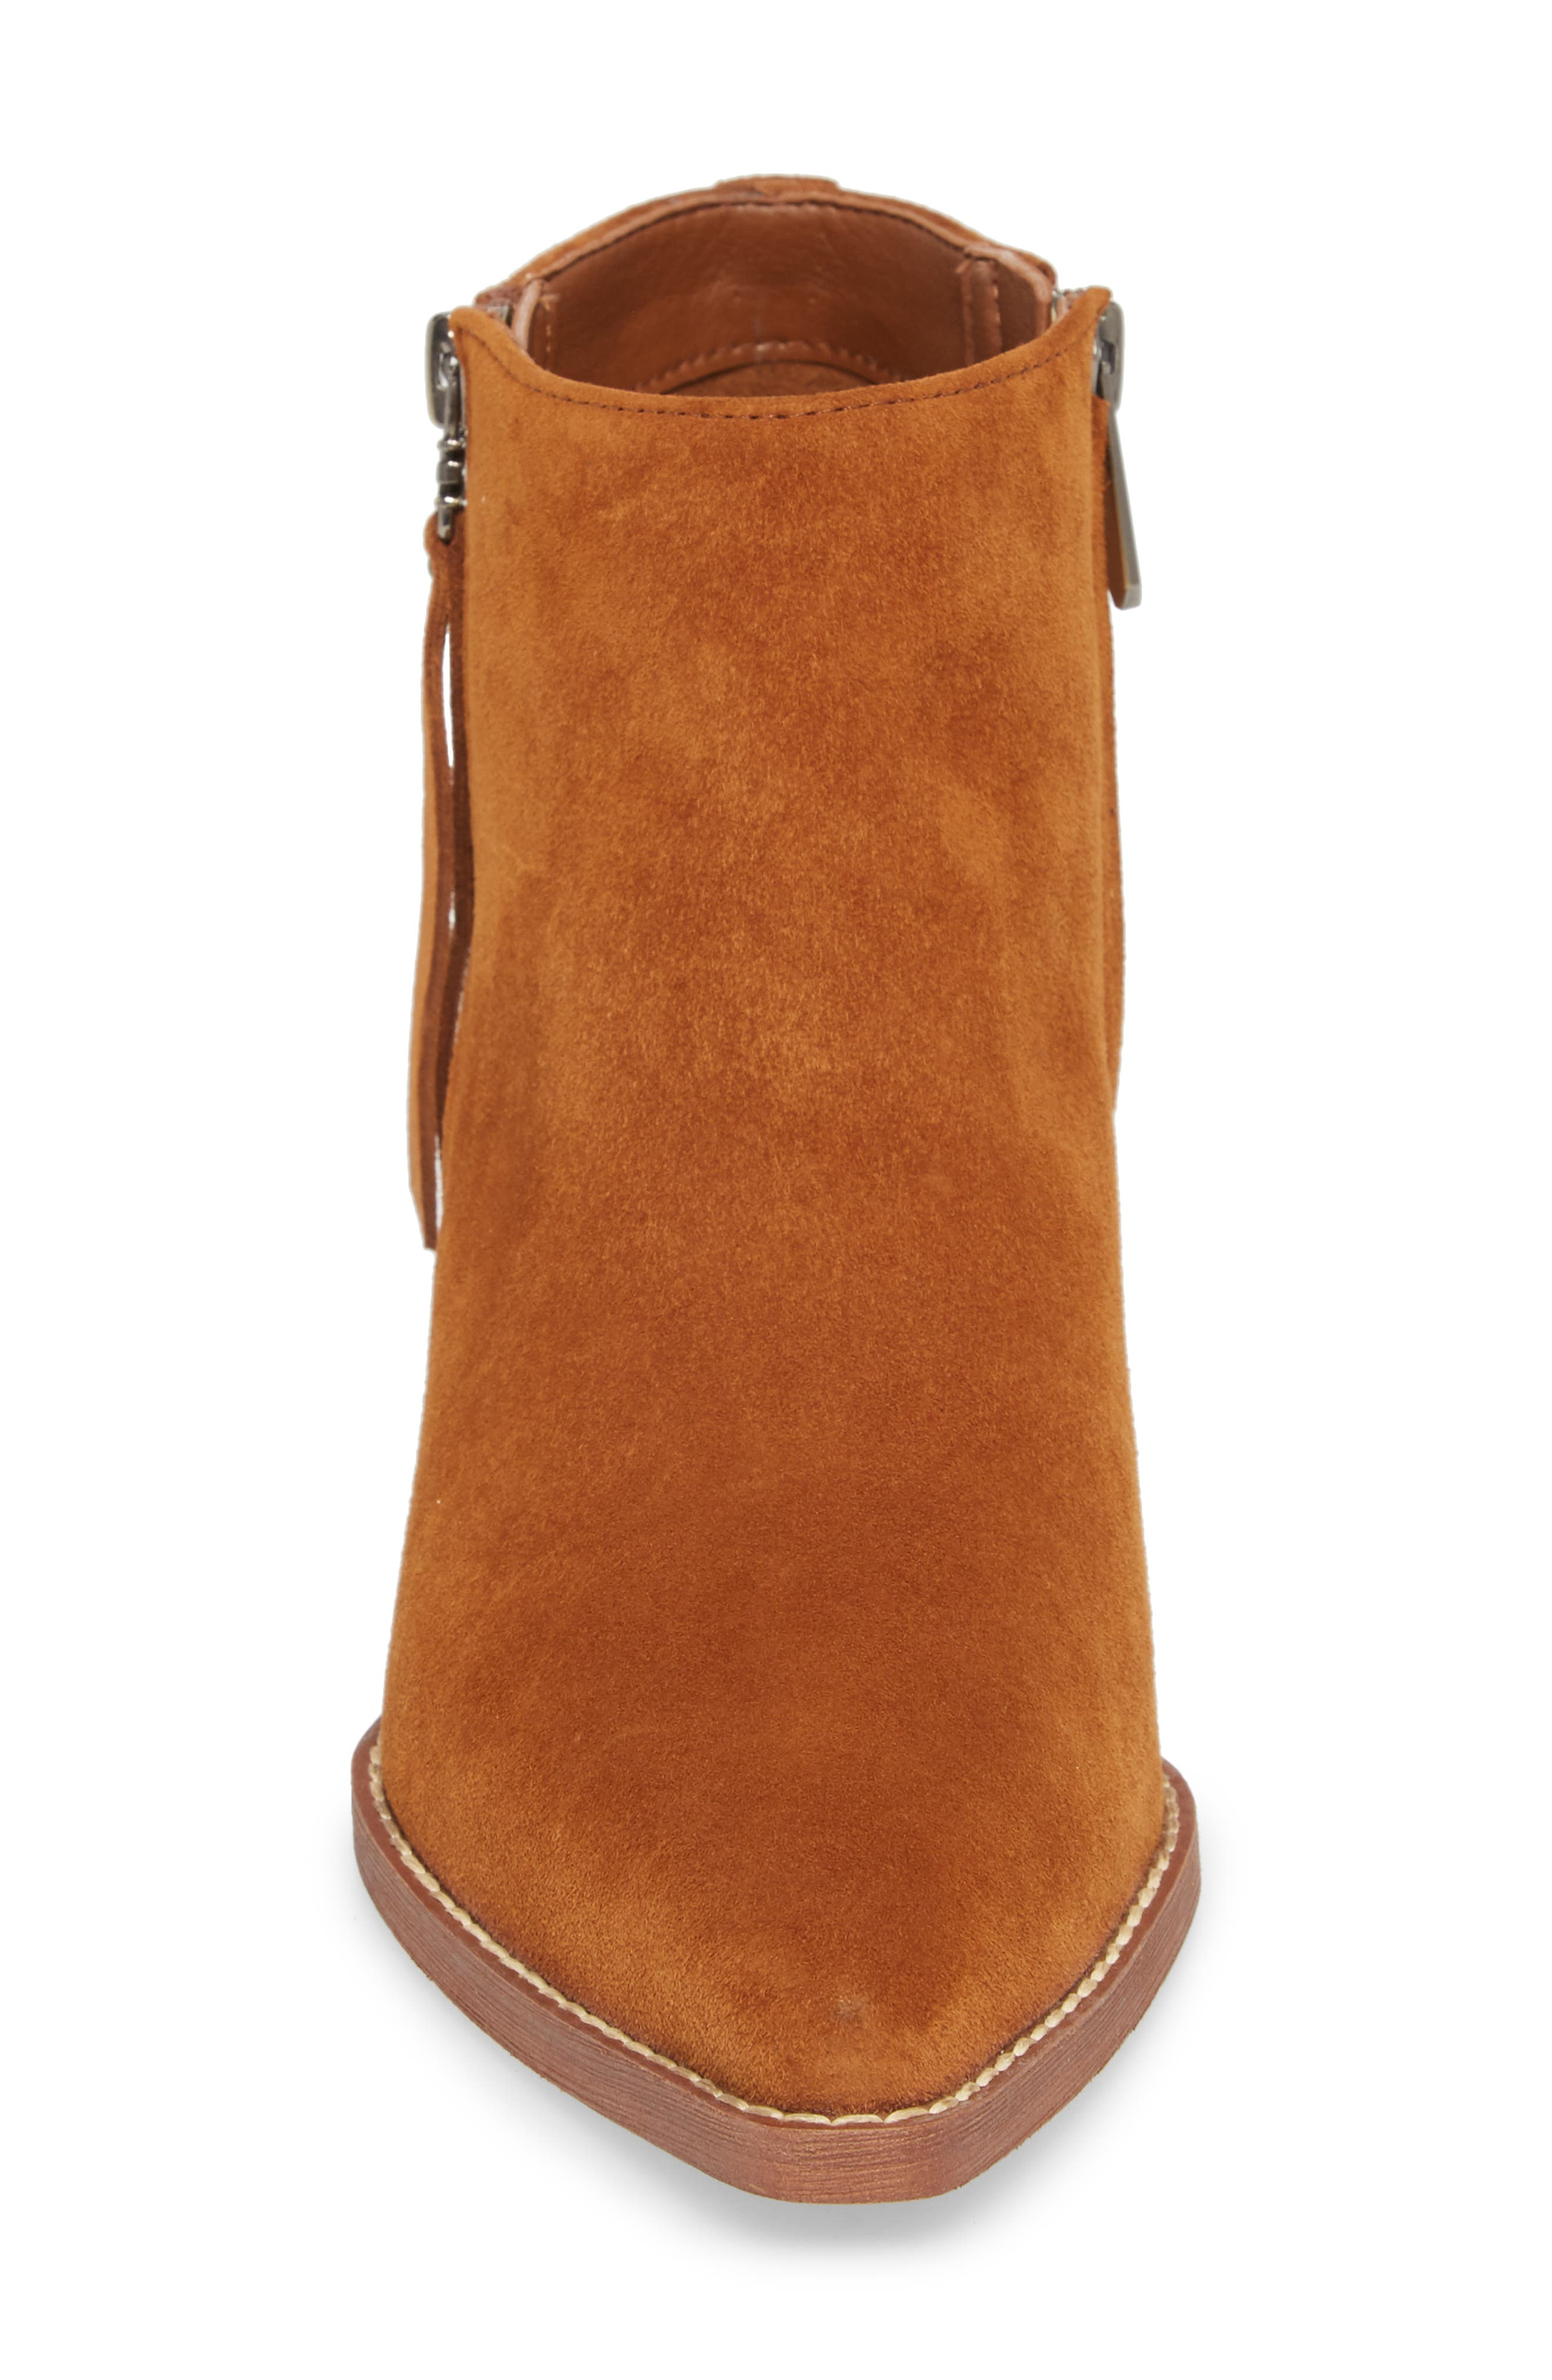 Walden Bootie,                             Alternate thumbnail 4, color,                             LUGGAGE SUEDE